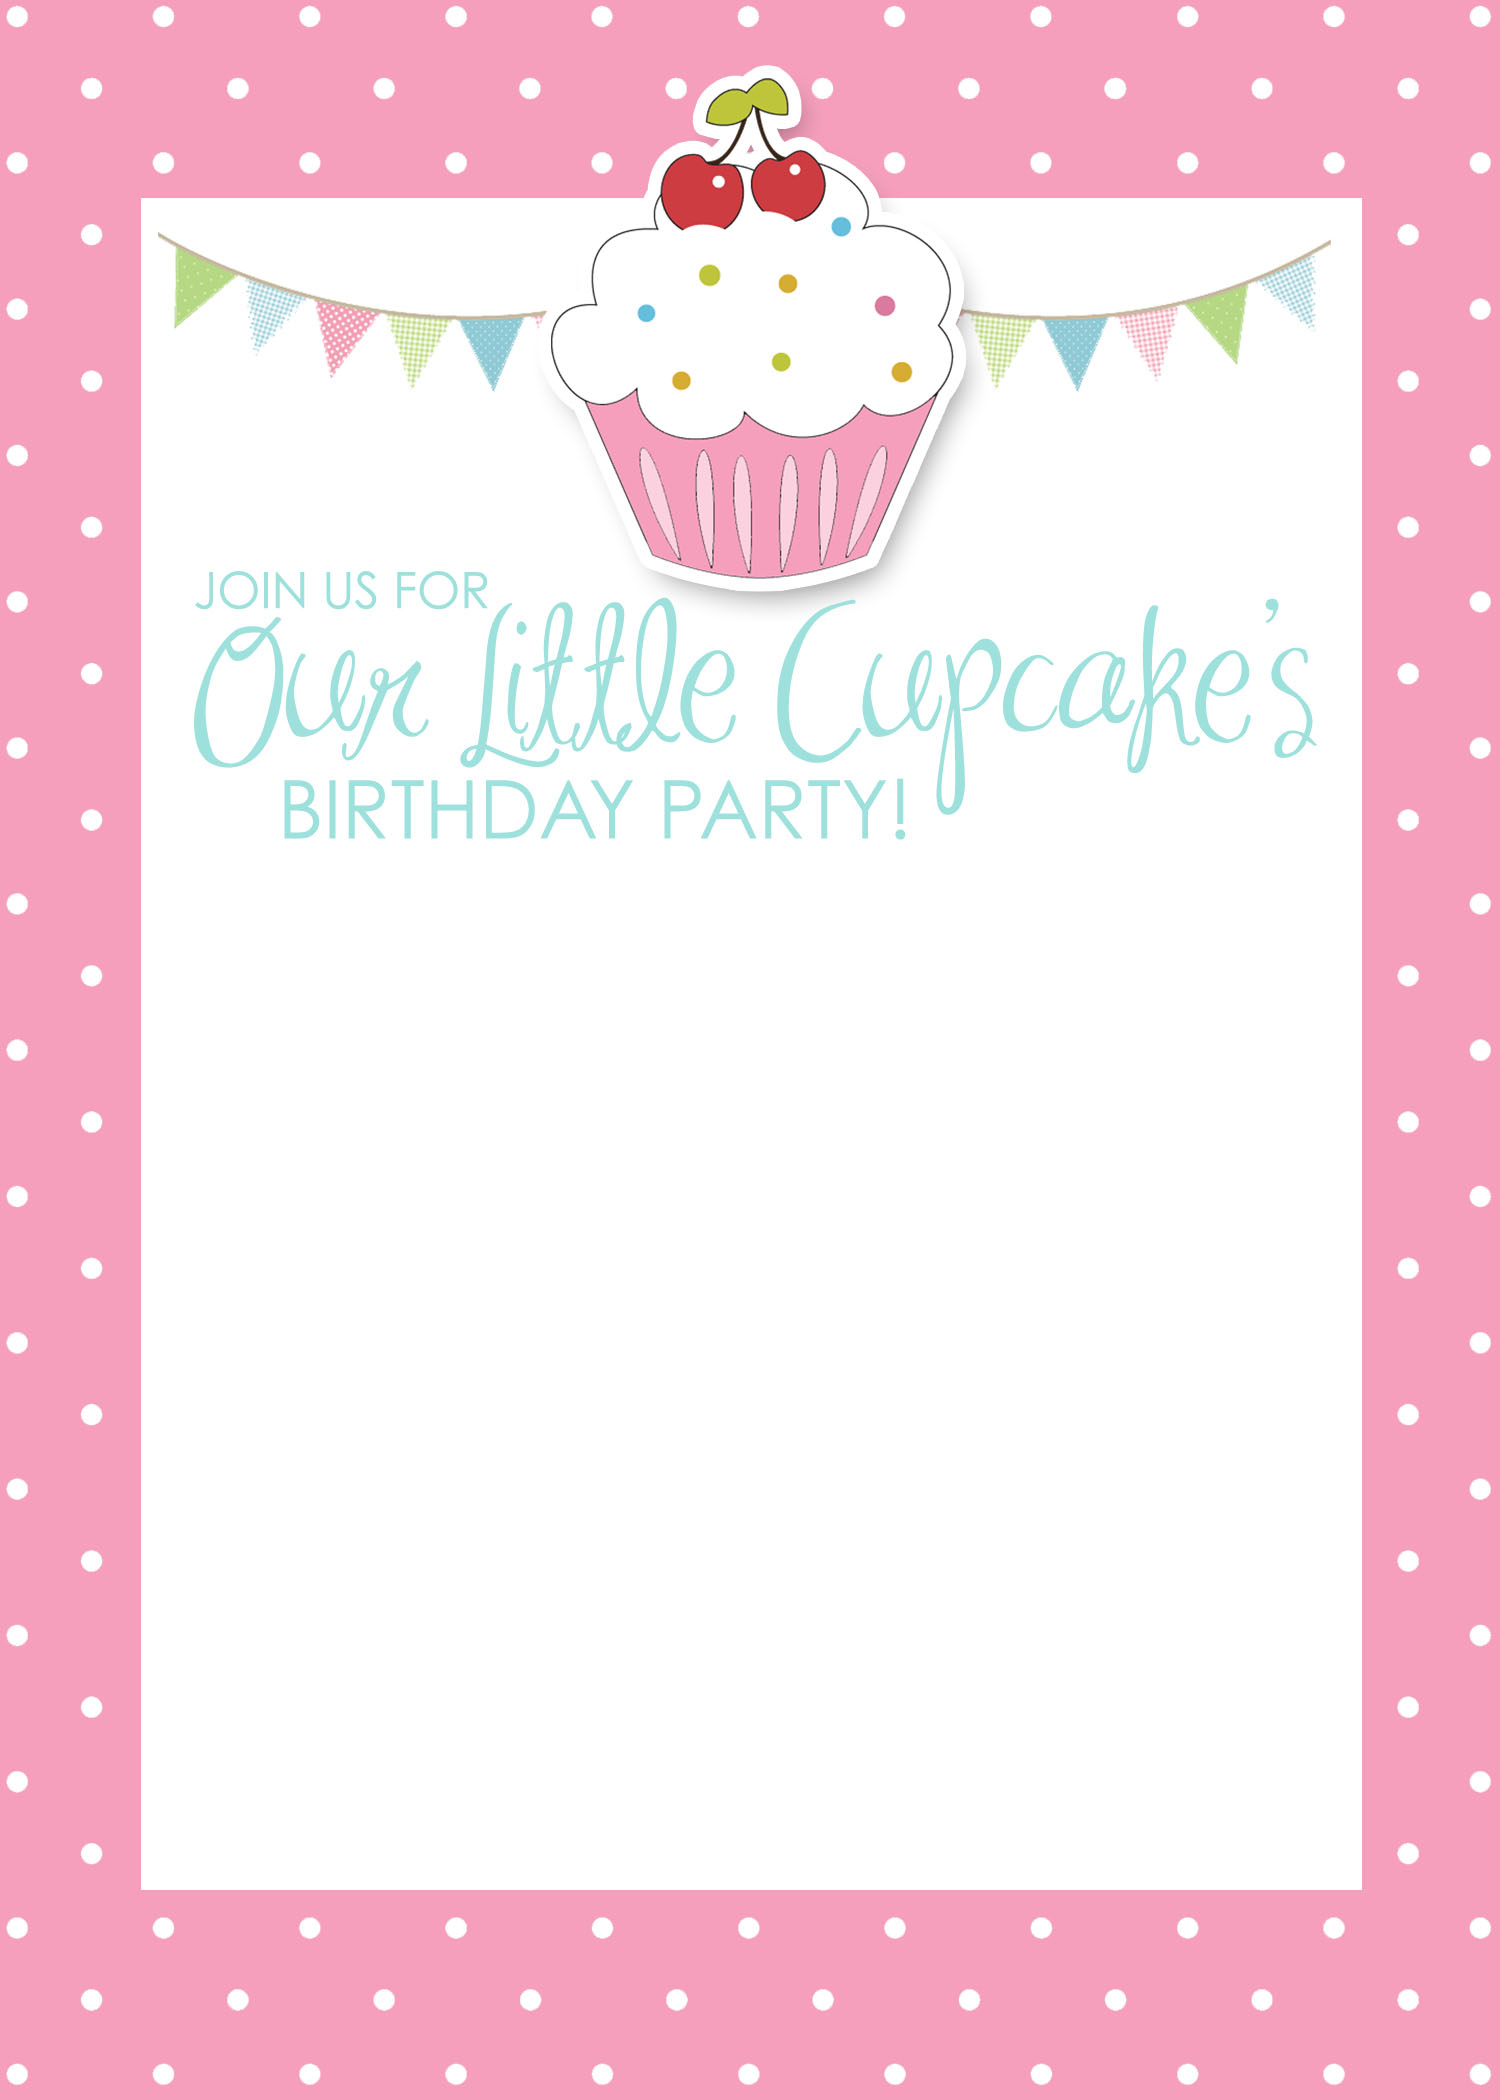 8 Images of Cupcake Invitations Free Printable Templates